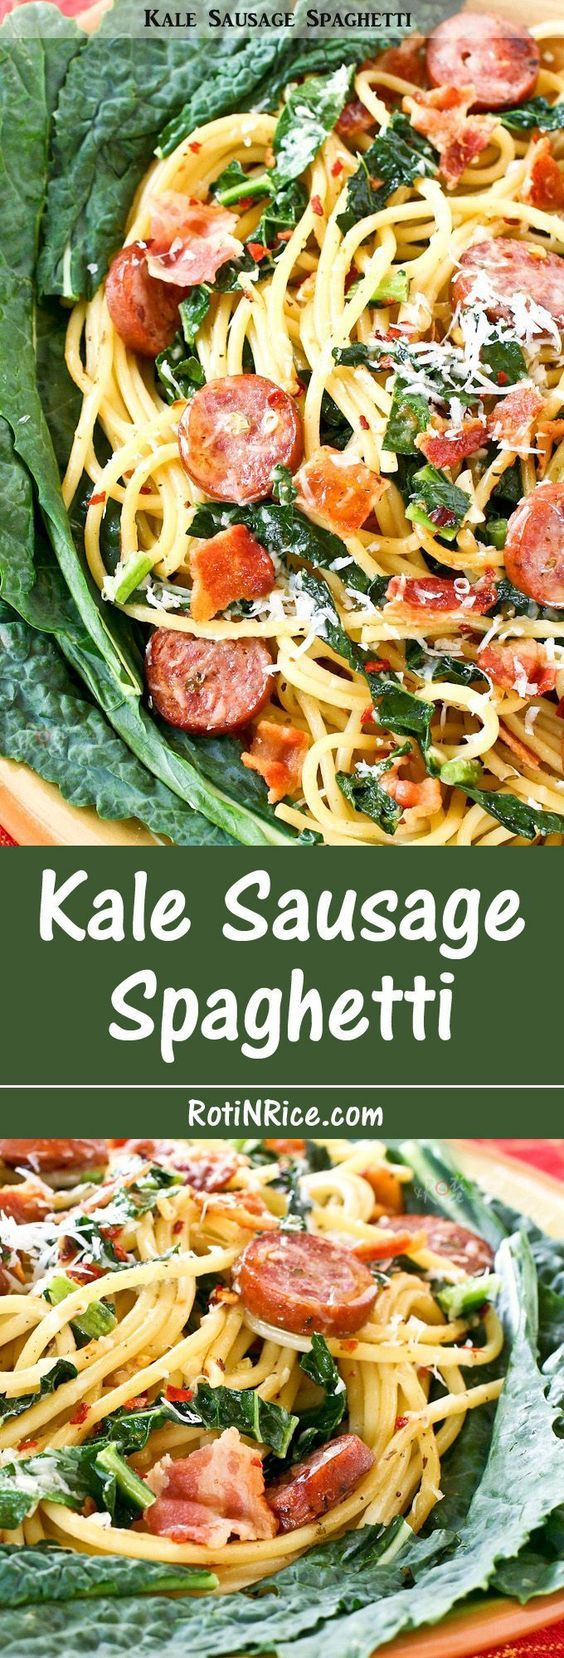 Kale Sausage Spaghetti - a pasta with bold flavors combining Polish sausage, earthy kale, spicy red pepper flakes, garlic, and bacon.   http://RotiNRice.com